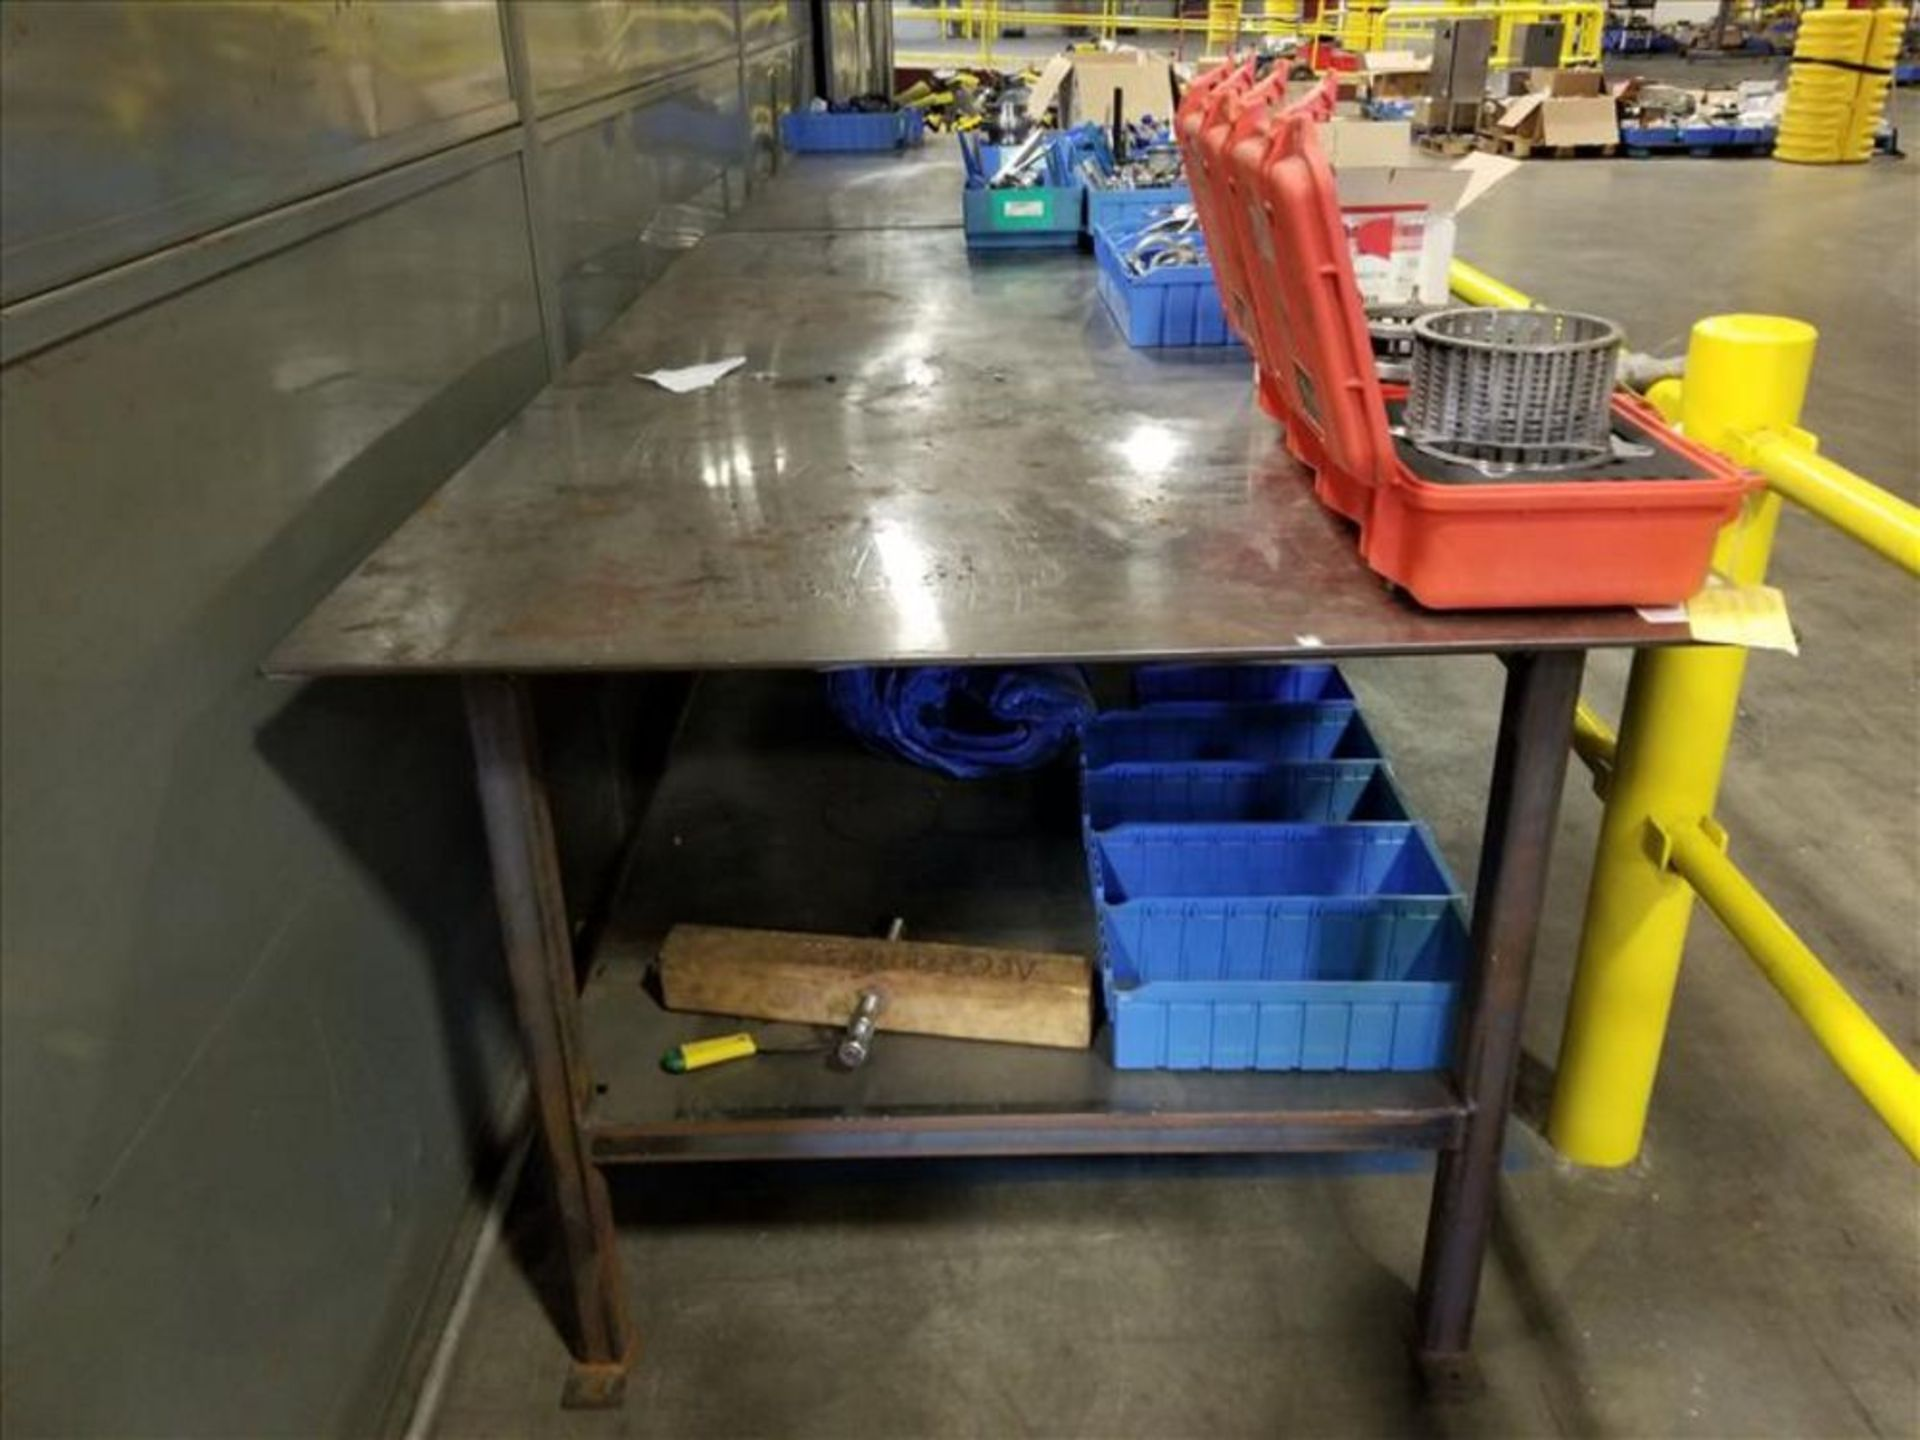 Lot 1532 - metal work table 8 ft. L x 48 in. W x 36 in. H